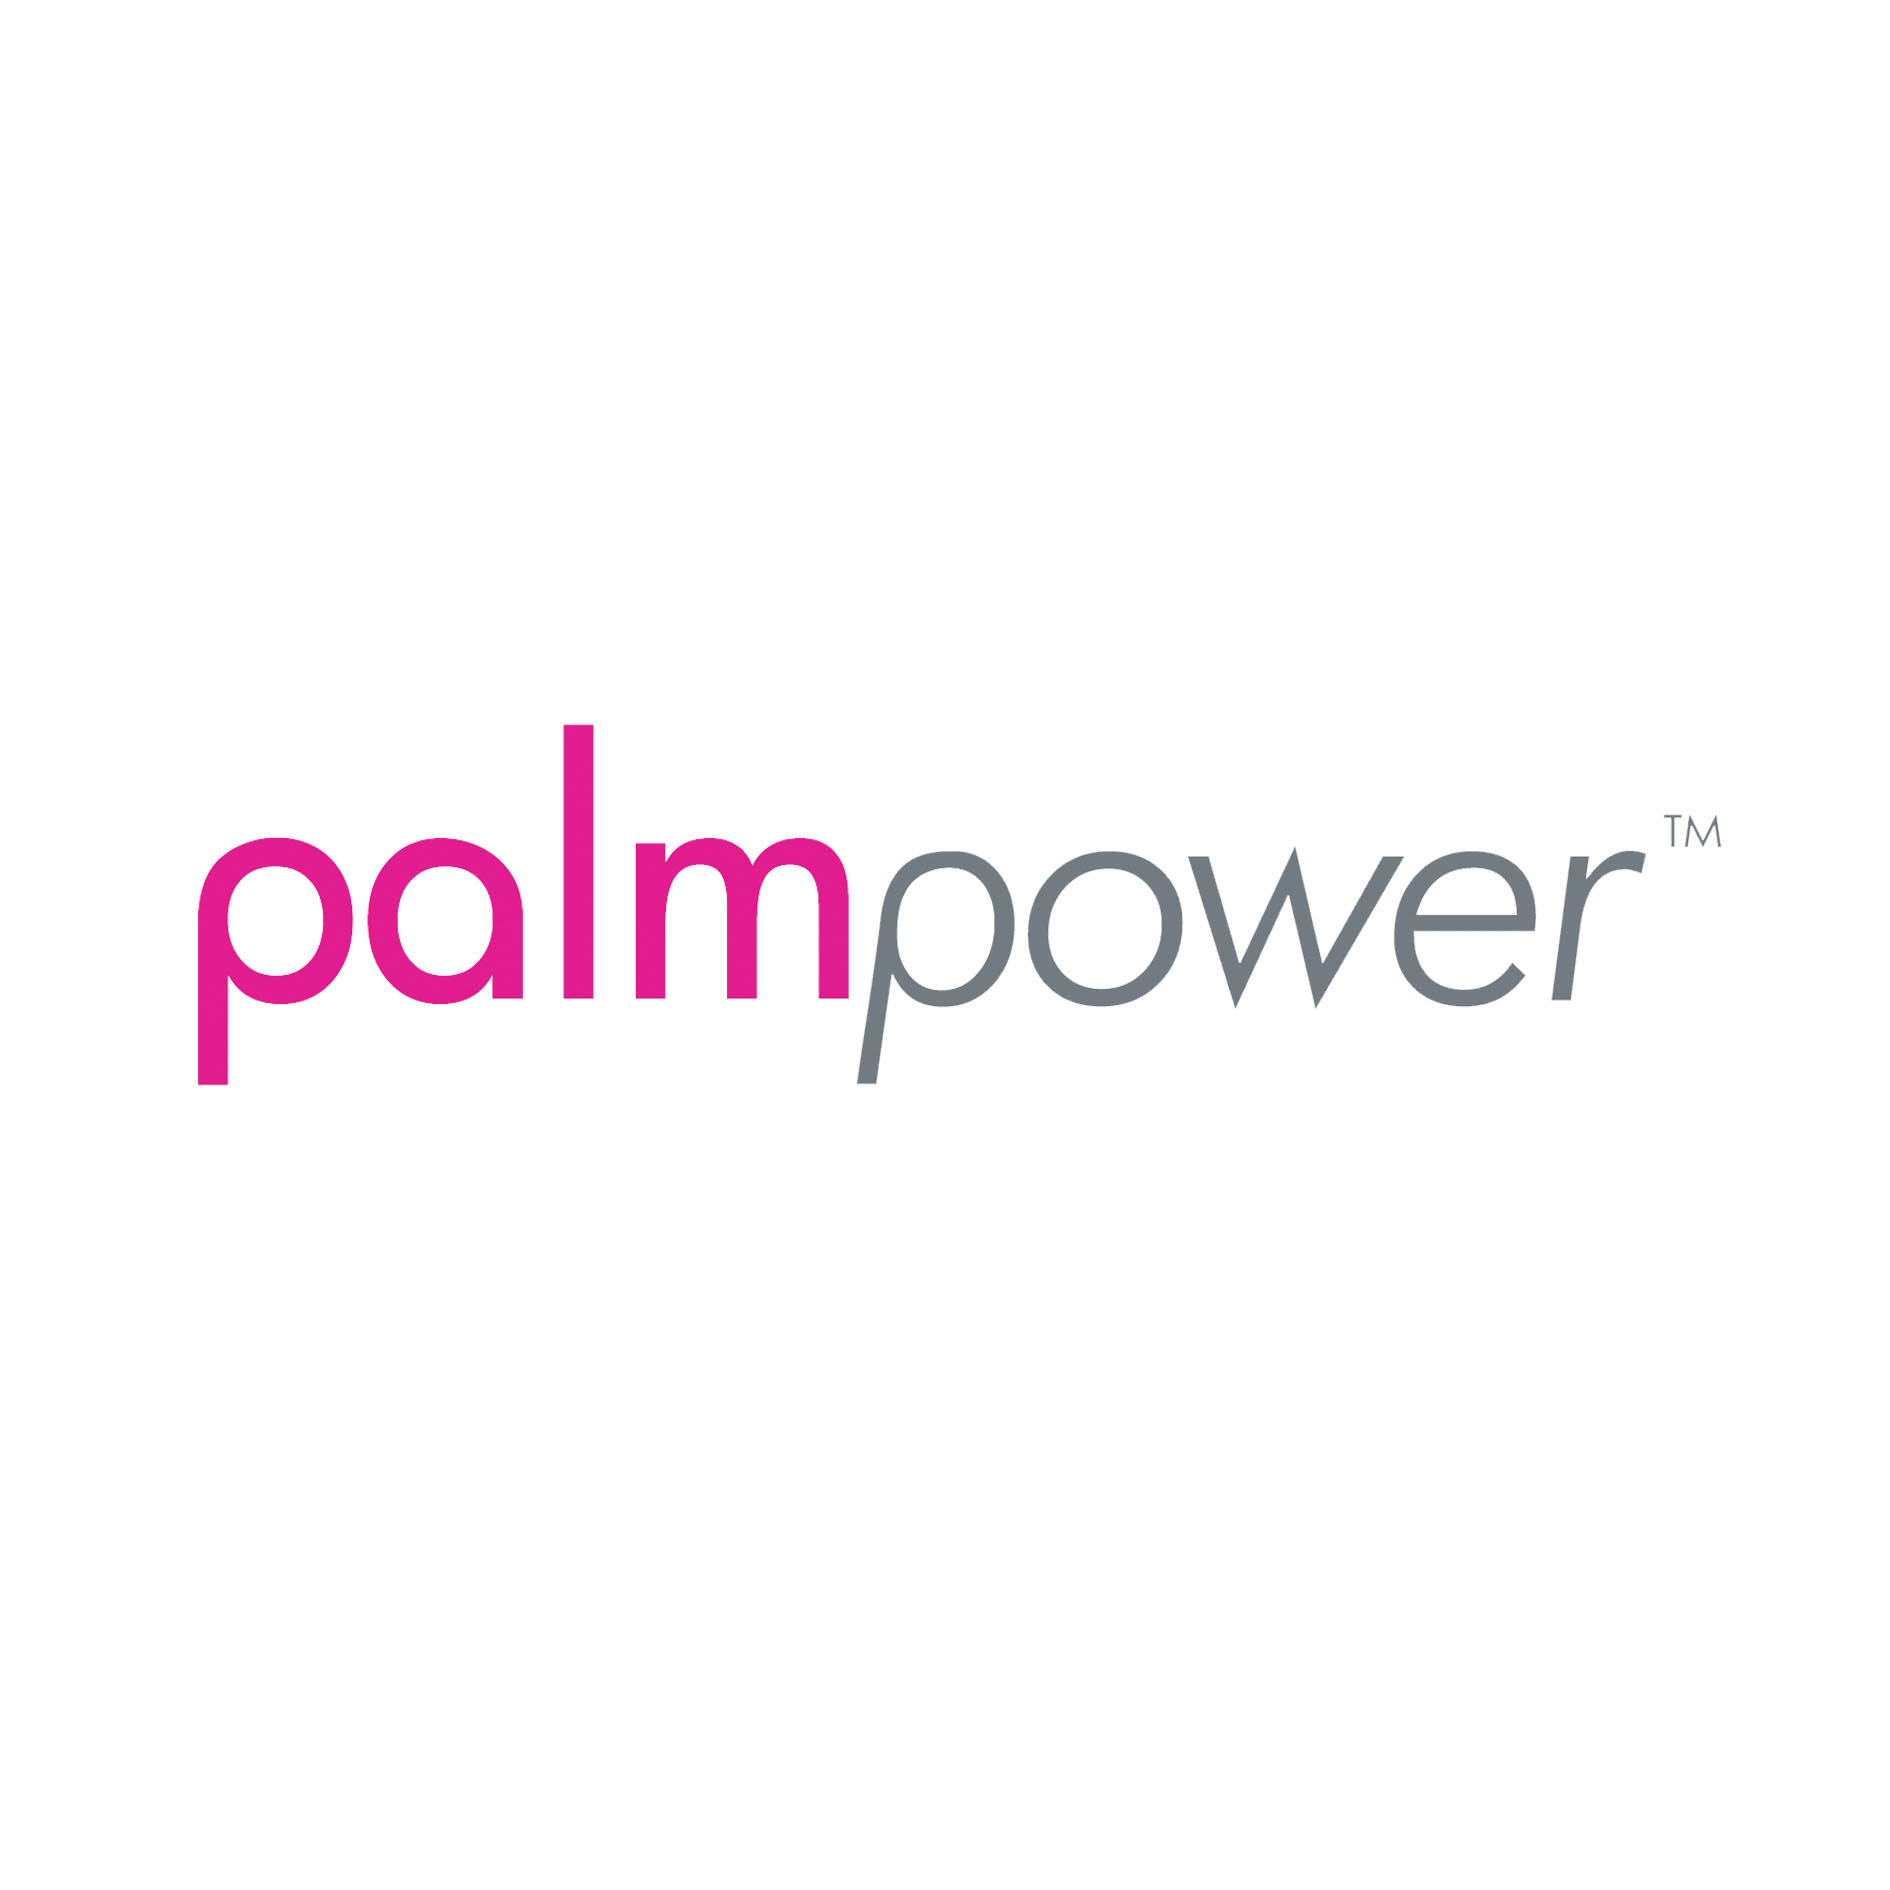 Palm Power